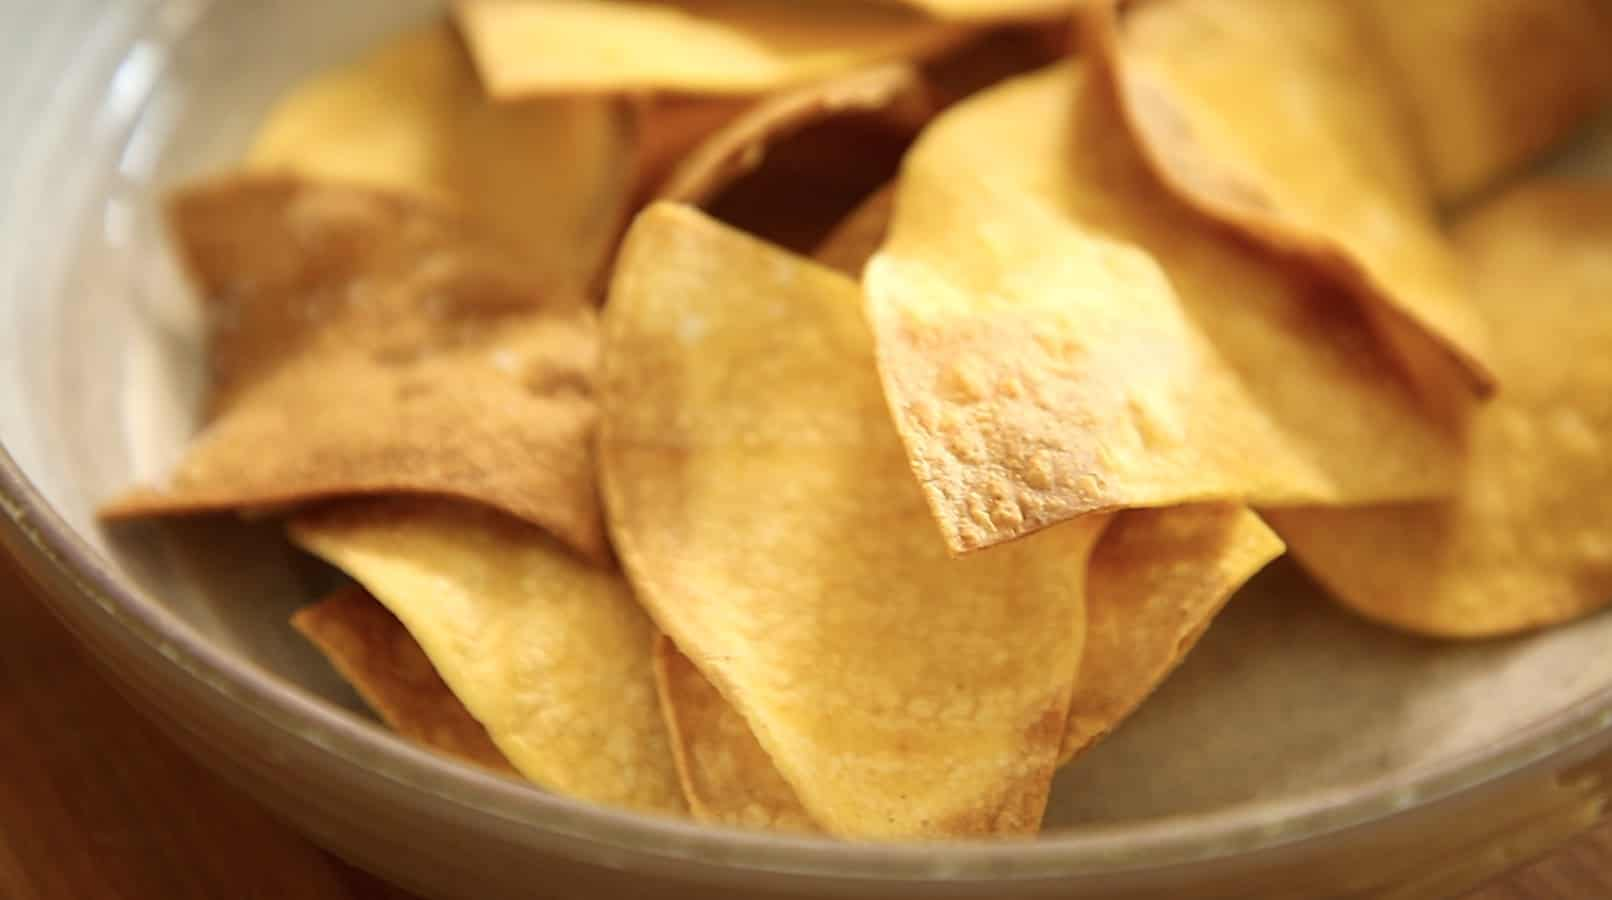 burnt tortilla chips that were air fried at too high of a temperature